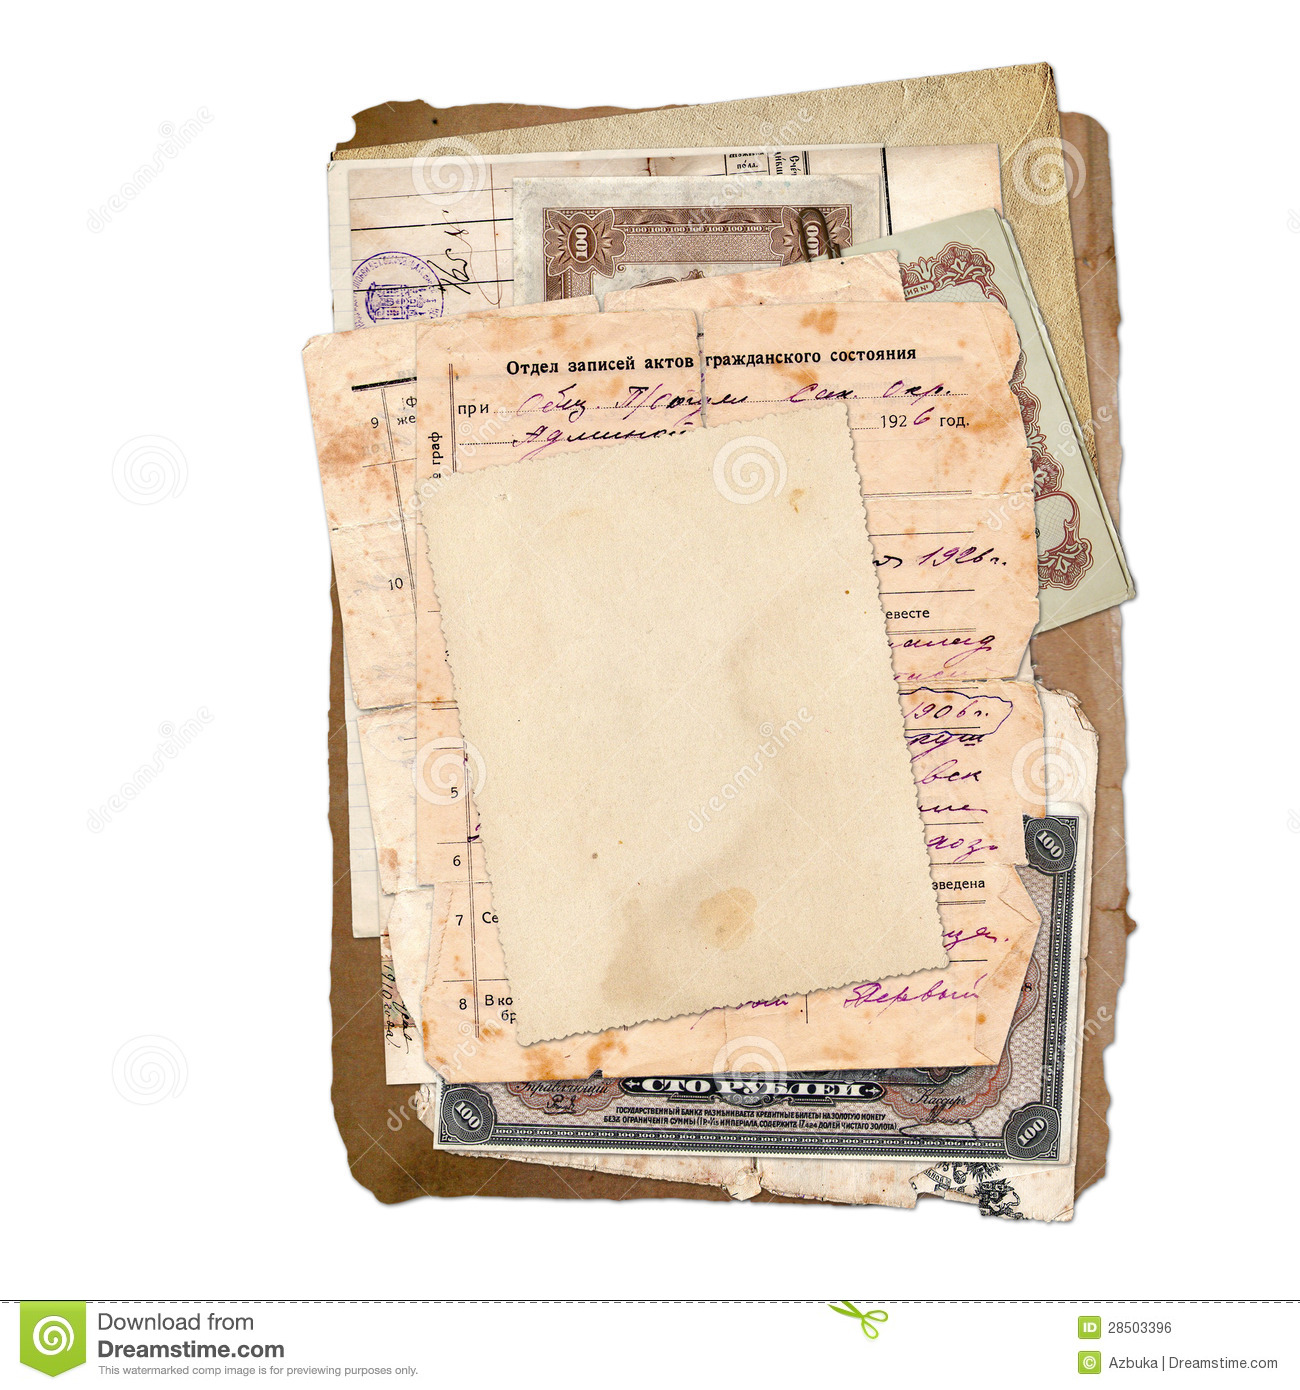 Old archive documents, letters, photo, money.